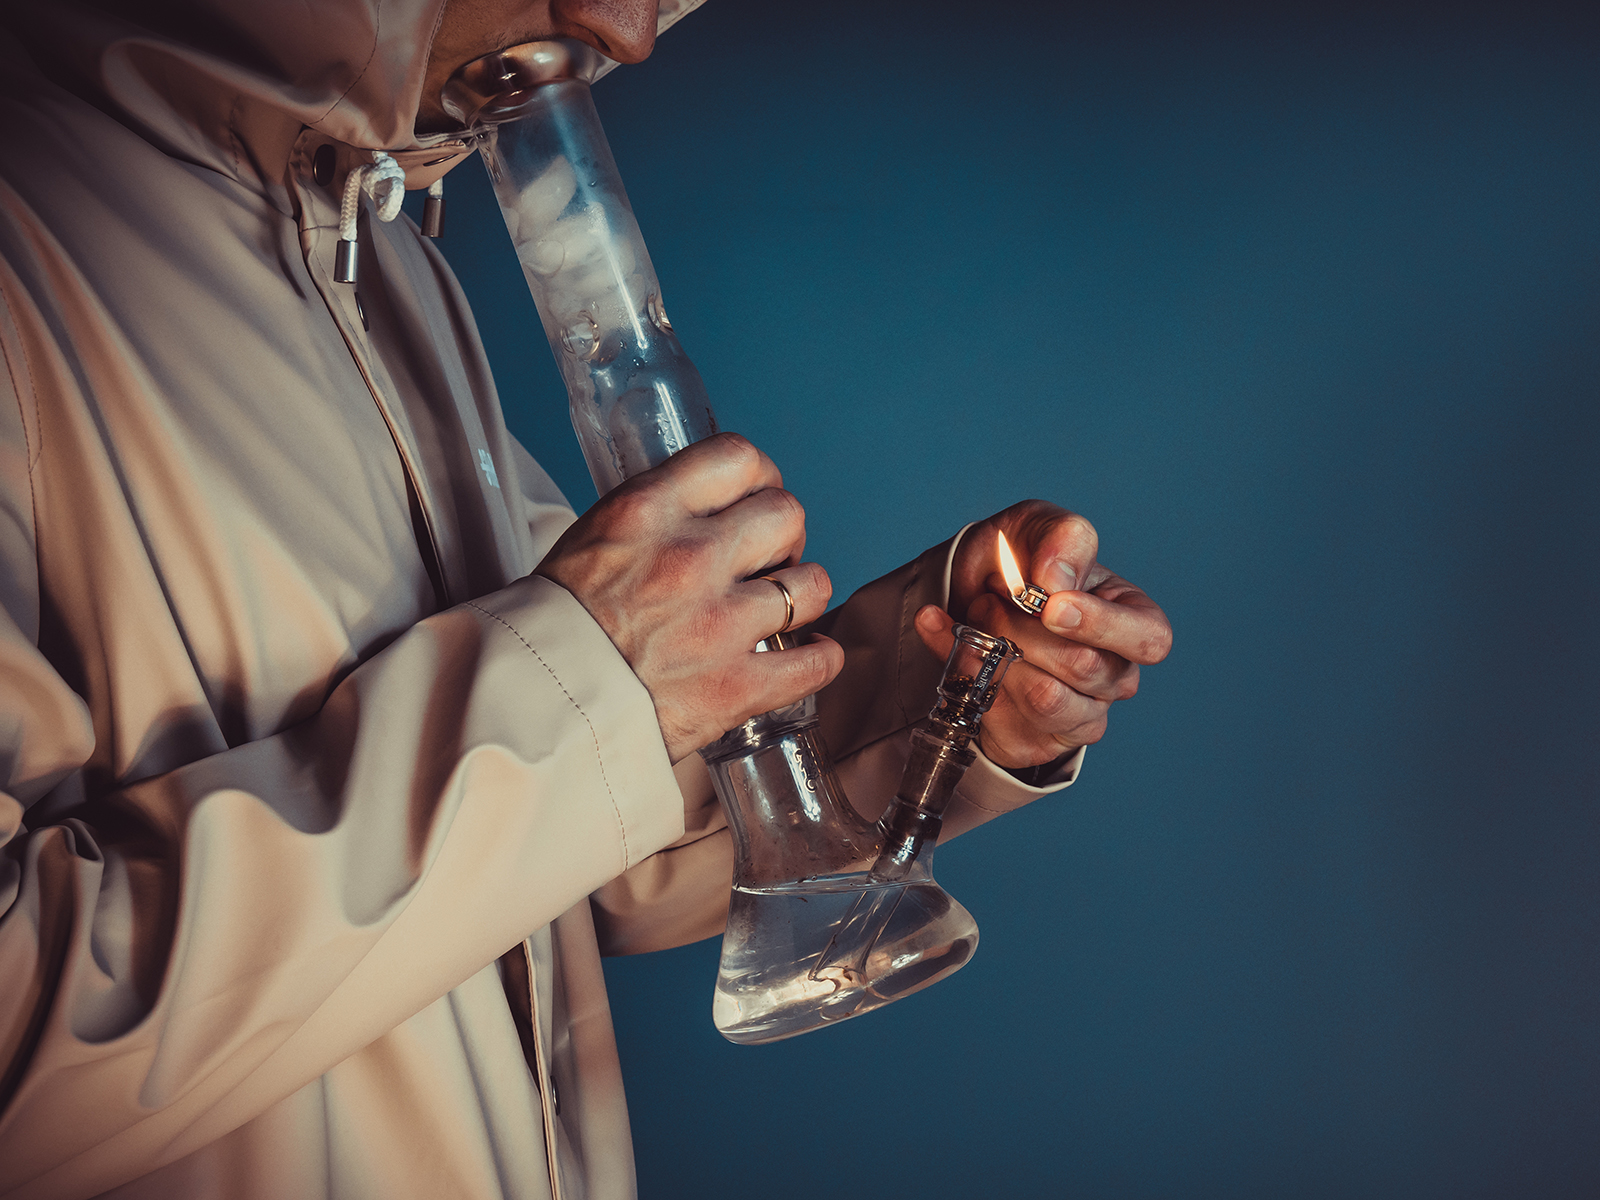 how to smoke a bong, best bongs for sale online